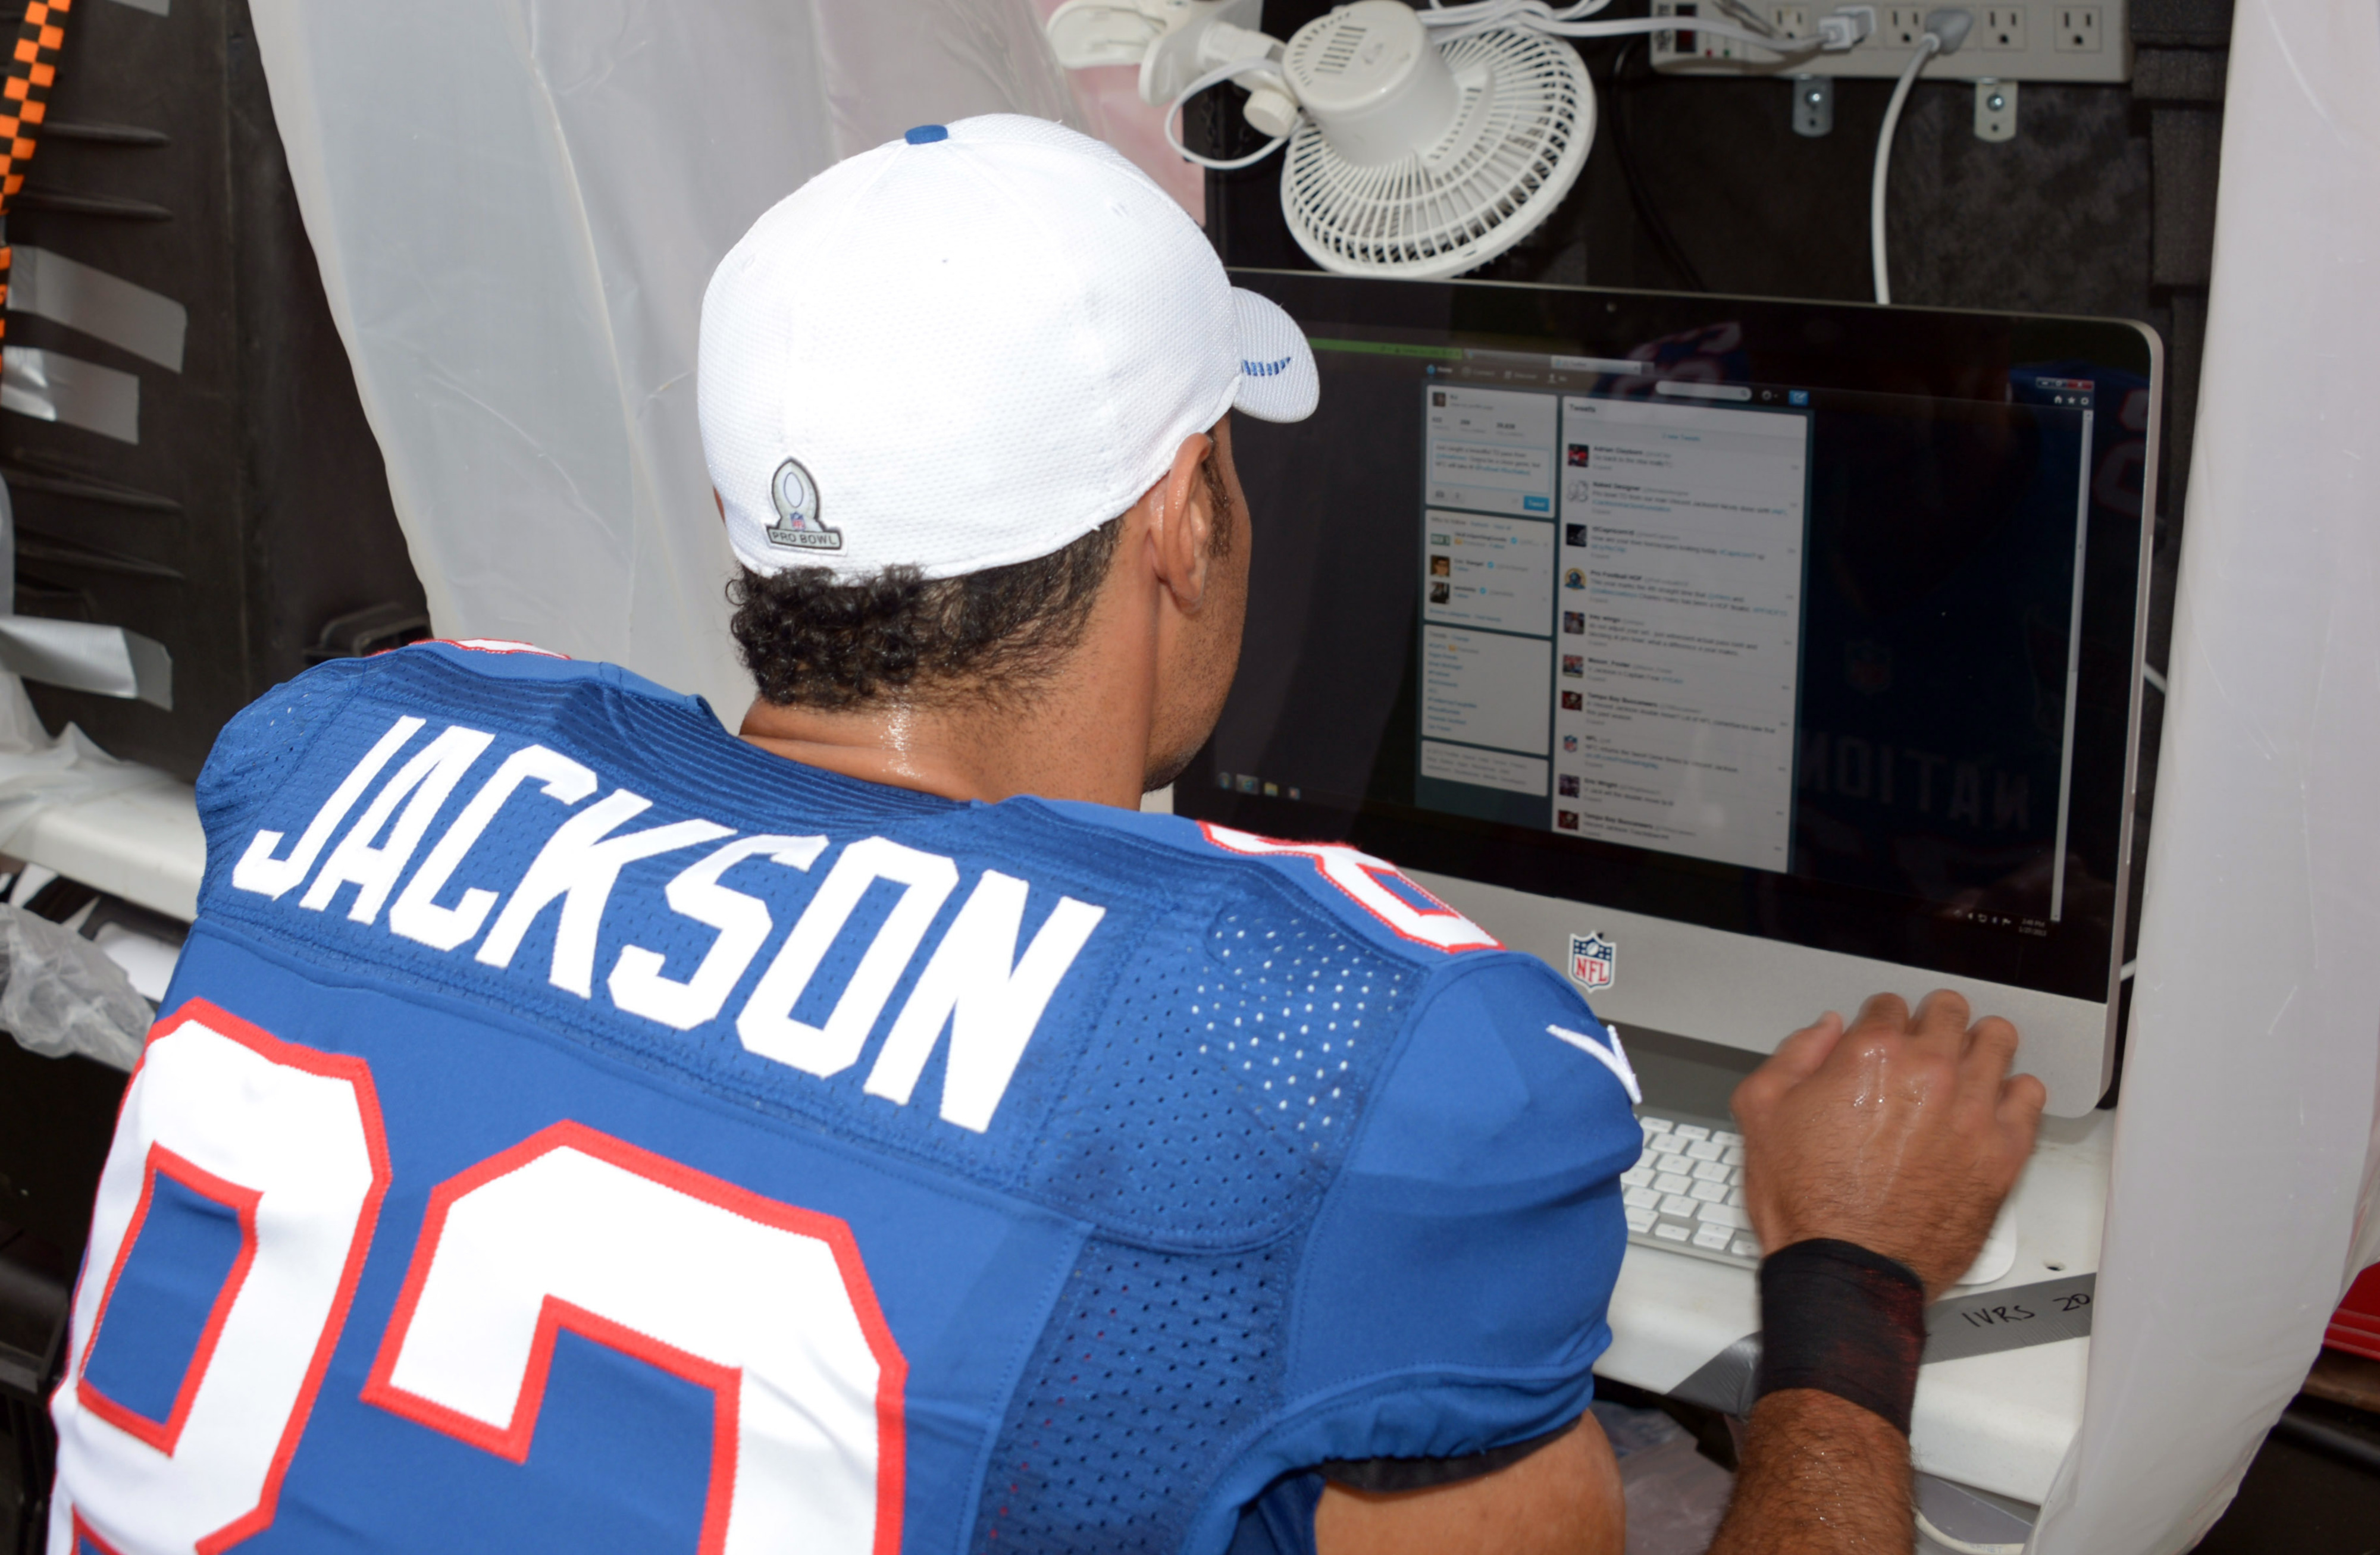 This has nothing to do with the Texans, but see the Twitter page on the screen?